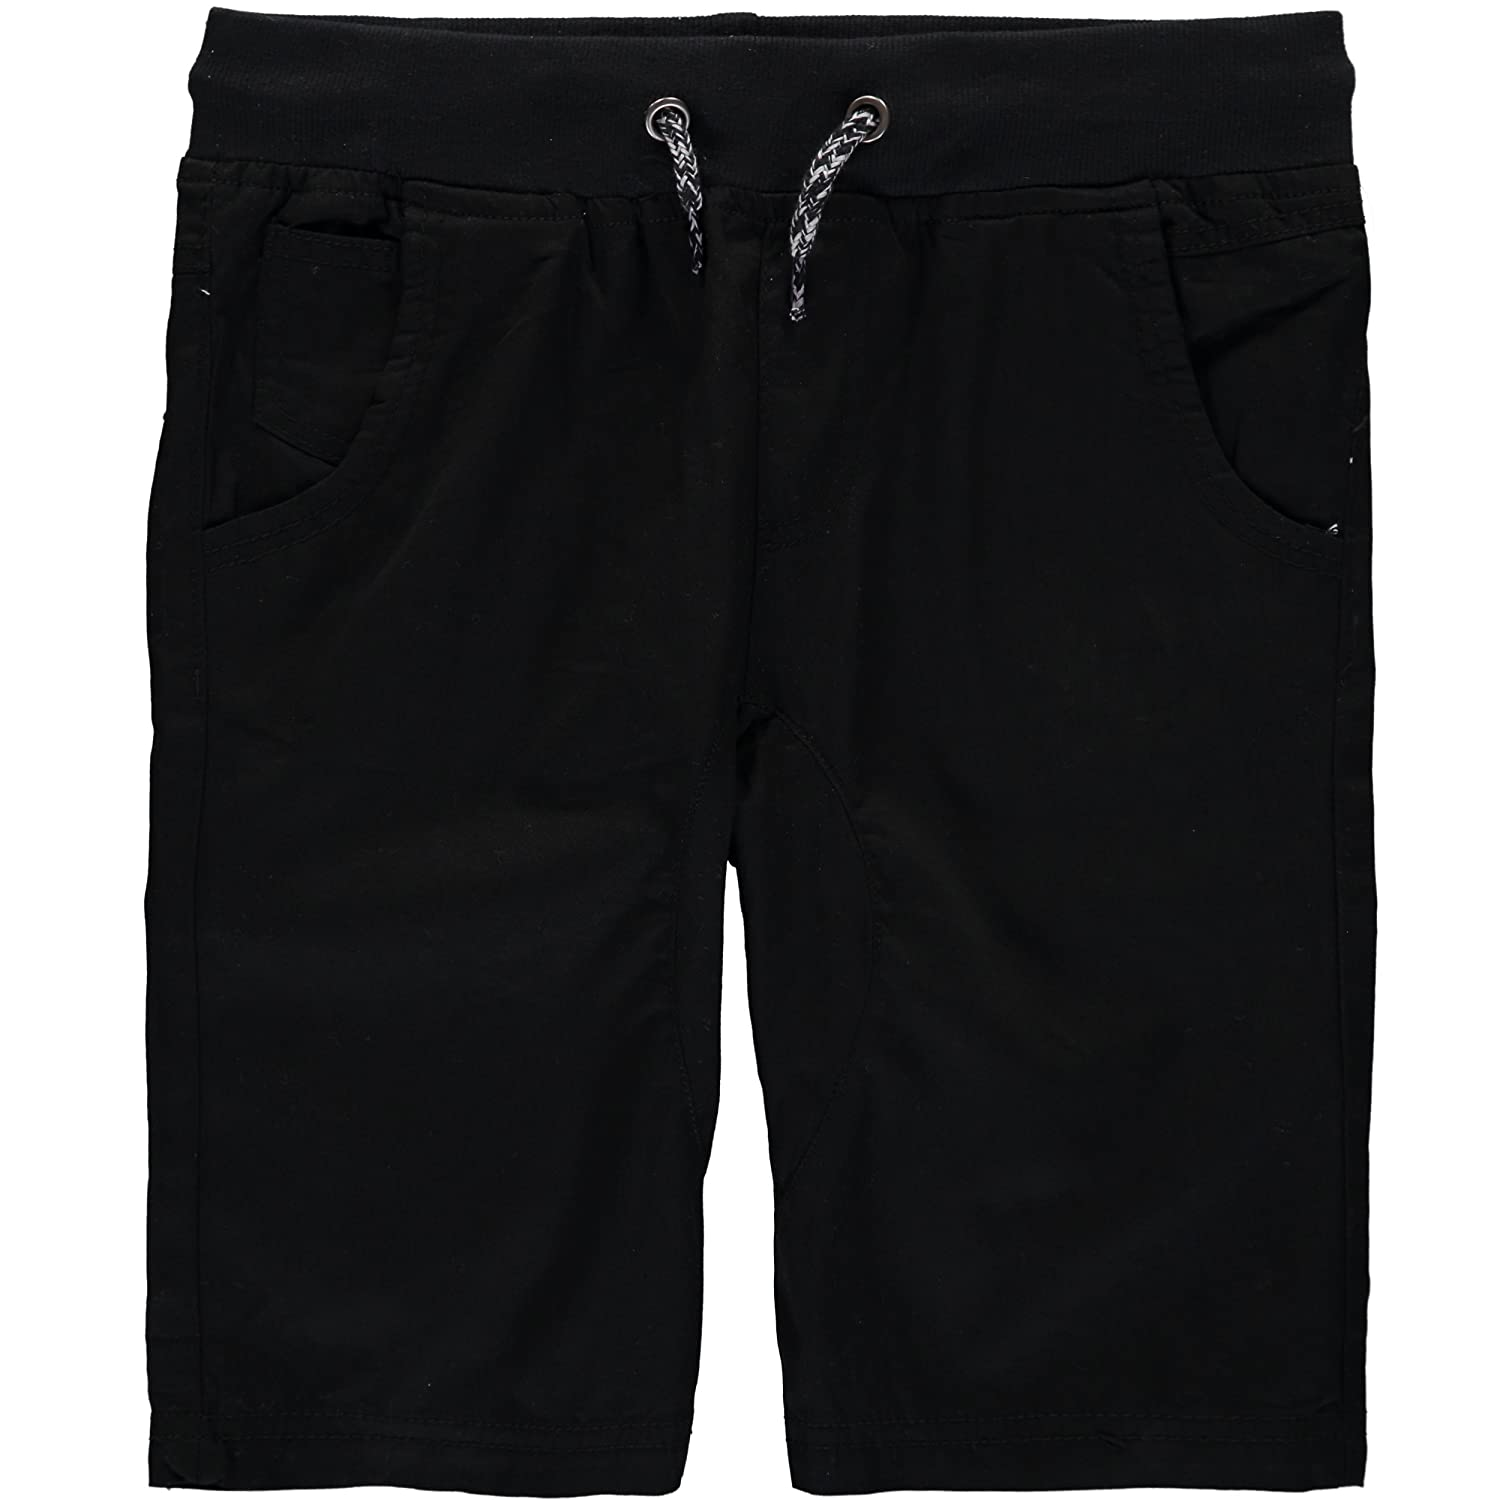 Smith's American SHORTS ボーイズ